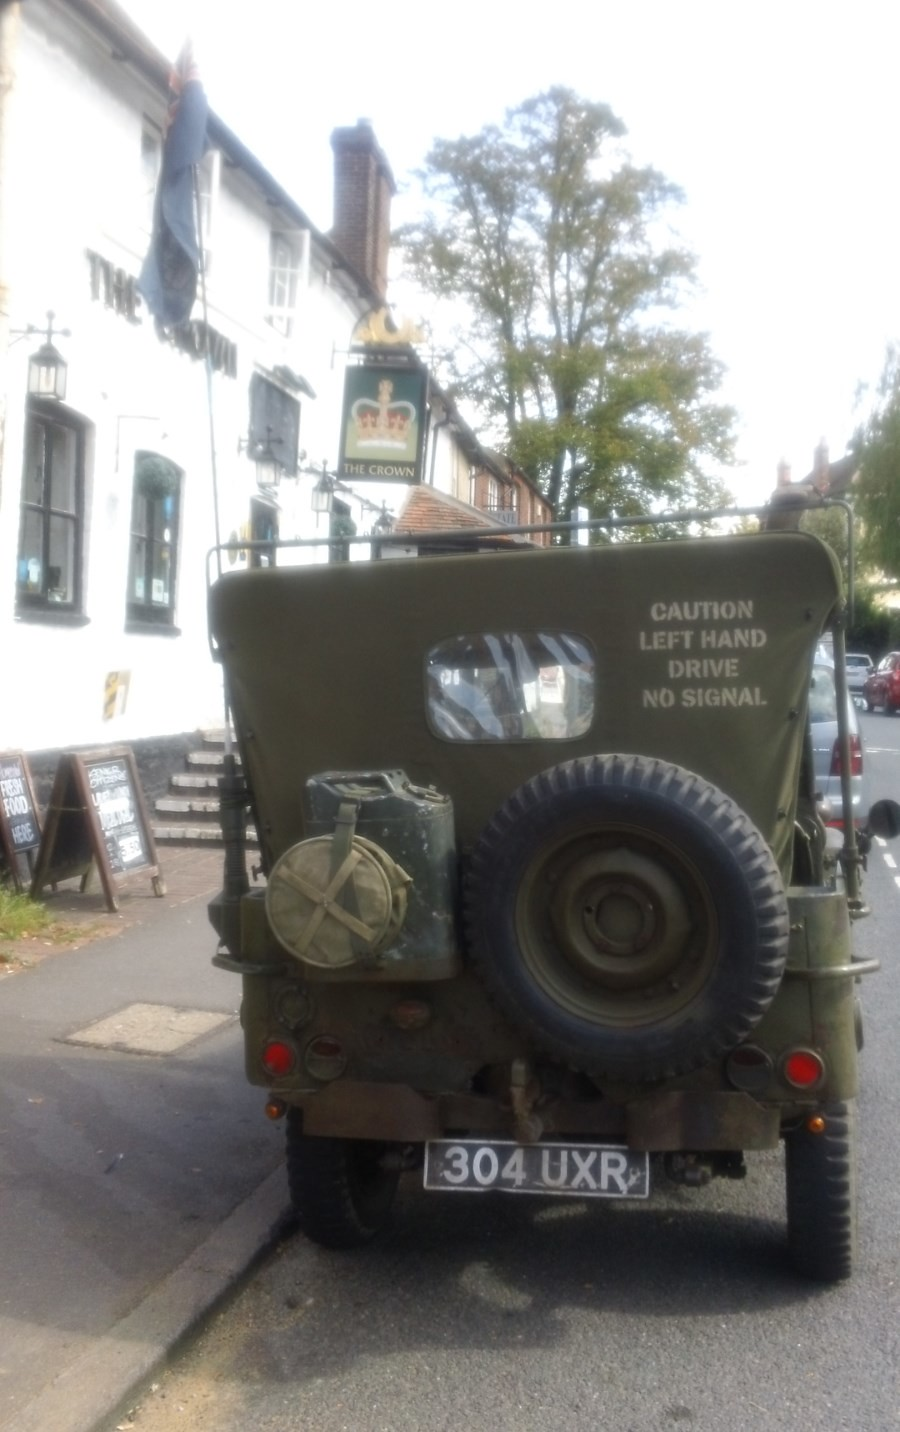 The Crown, Otford a WW2 jeep parked in front